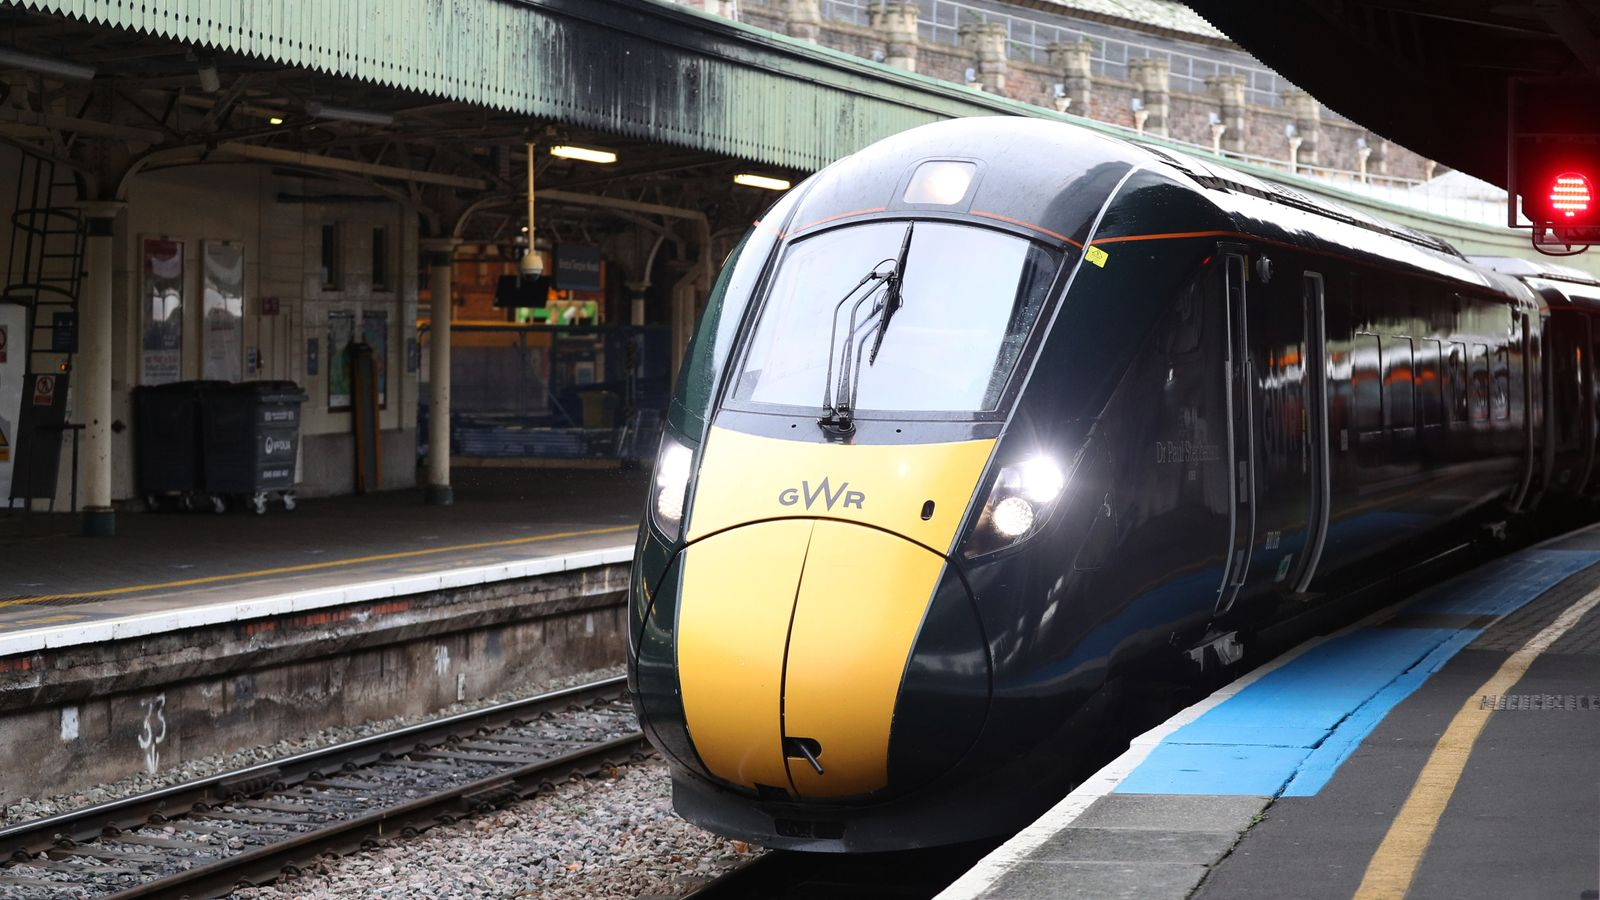 Rail passengers told 'not to travel' on second day of disruption after cracks found on trains